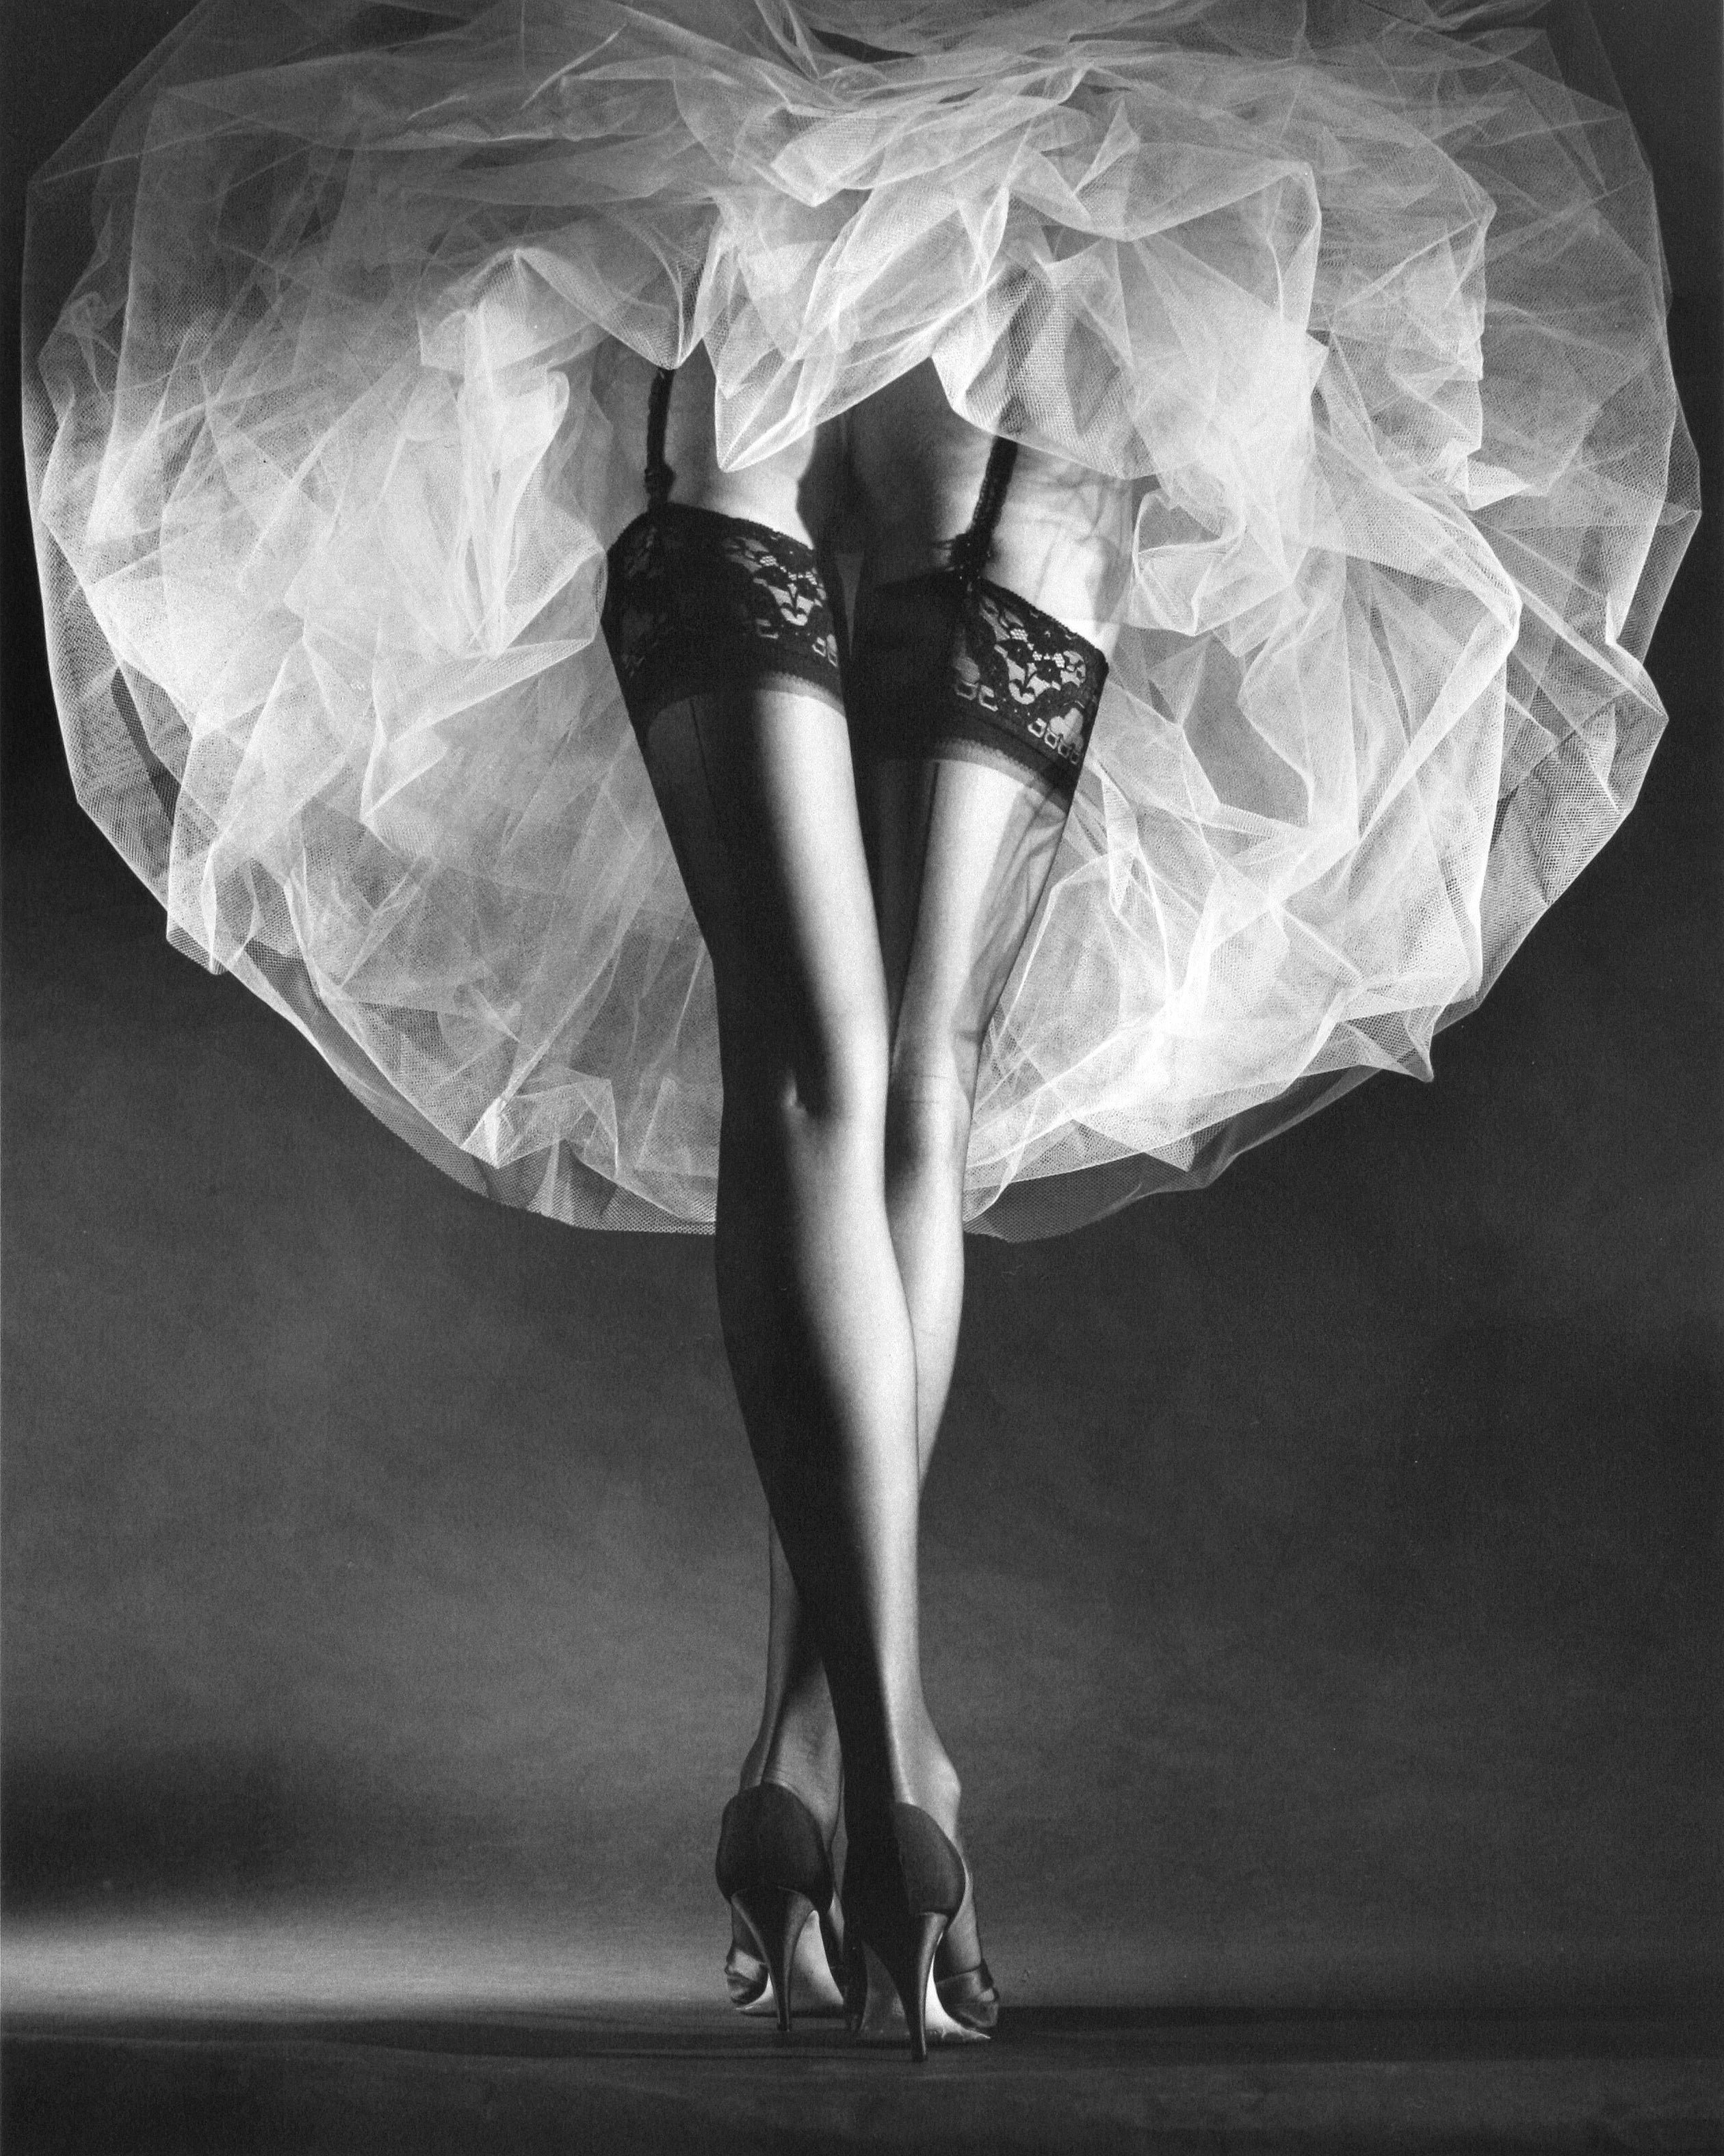 Round The Clock I, New York - Horst P. Horst (Black and White Photography)